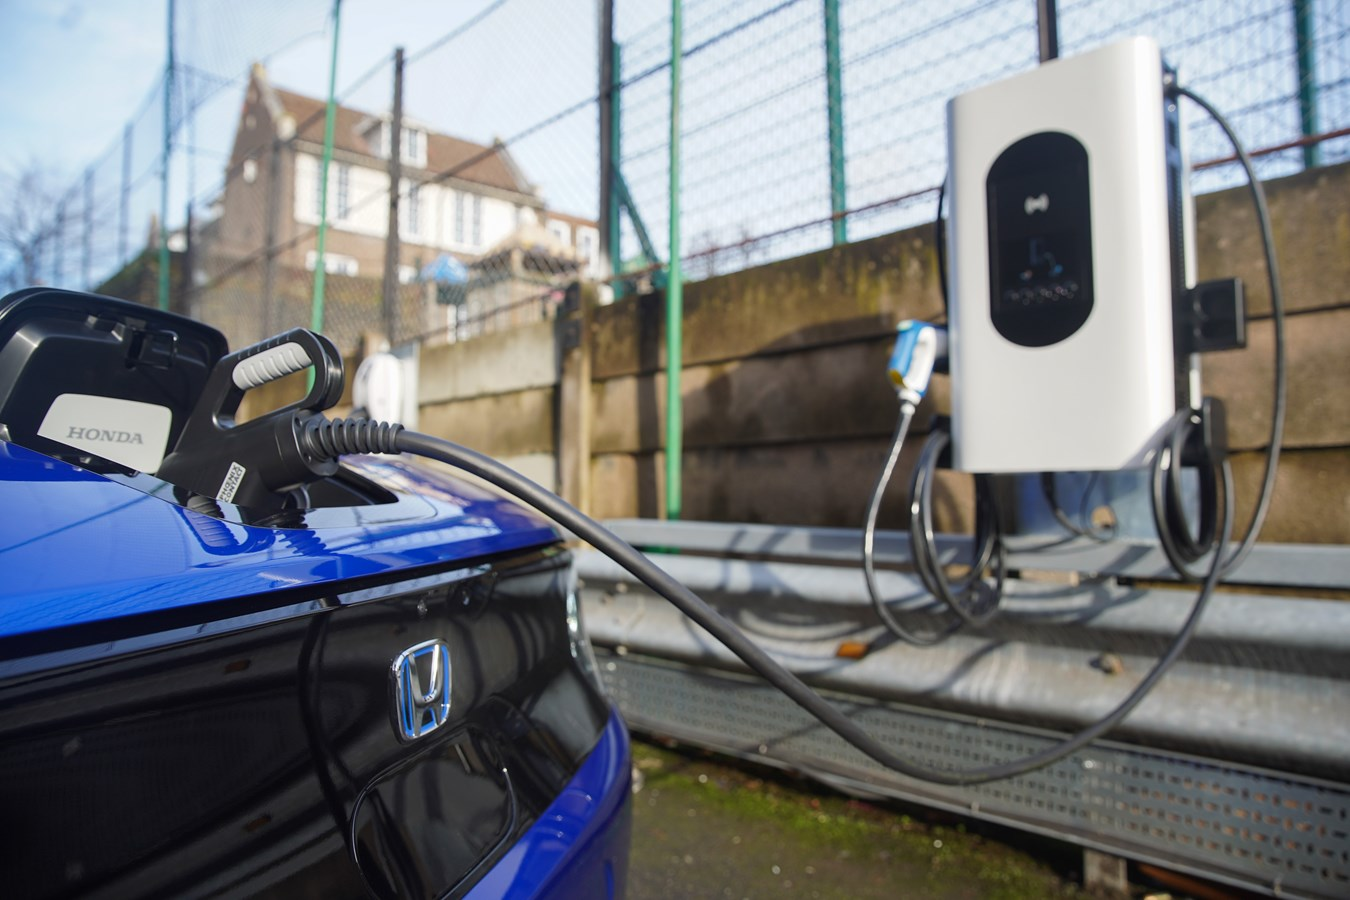 HONDA PARTNERS WITH MOIXA TO BRING V2G CHARGING PROJECT TO ISLINGTON